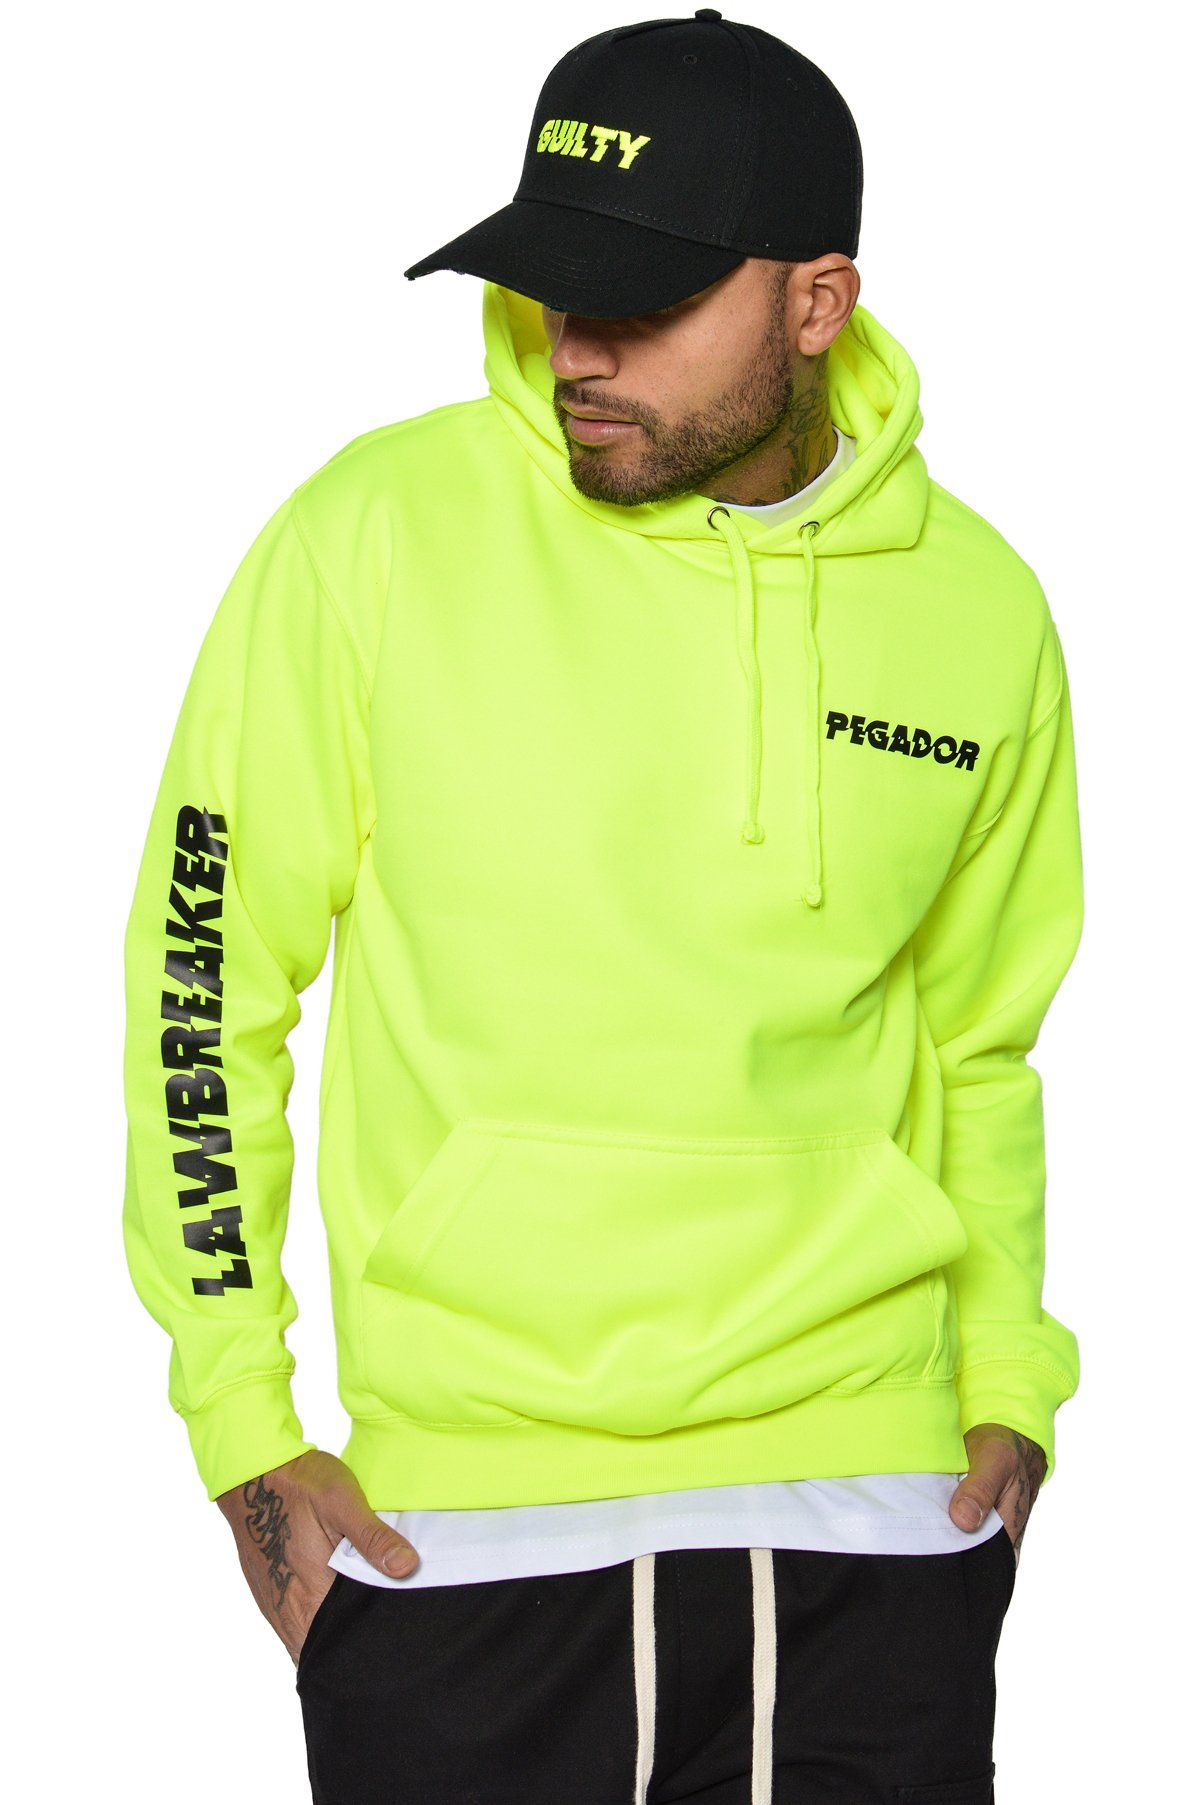 Guilty Hoodie Electric Yellow Hoodies PEGADOR